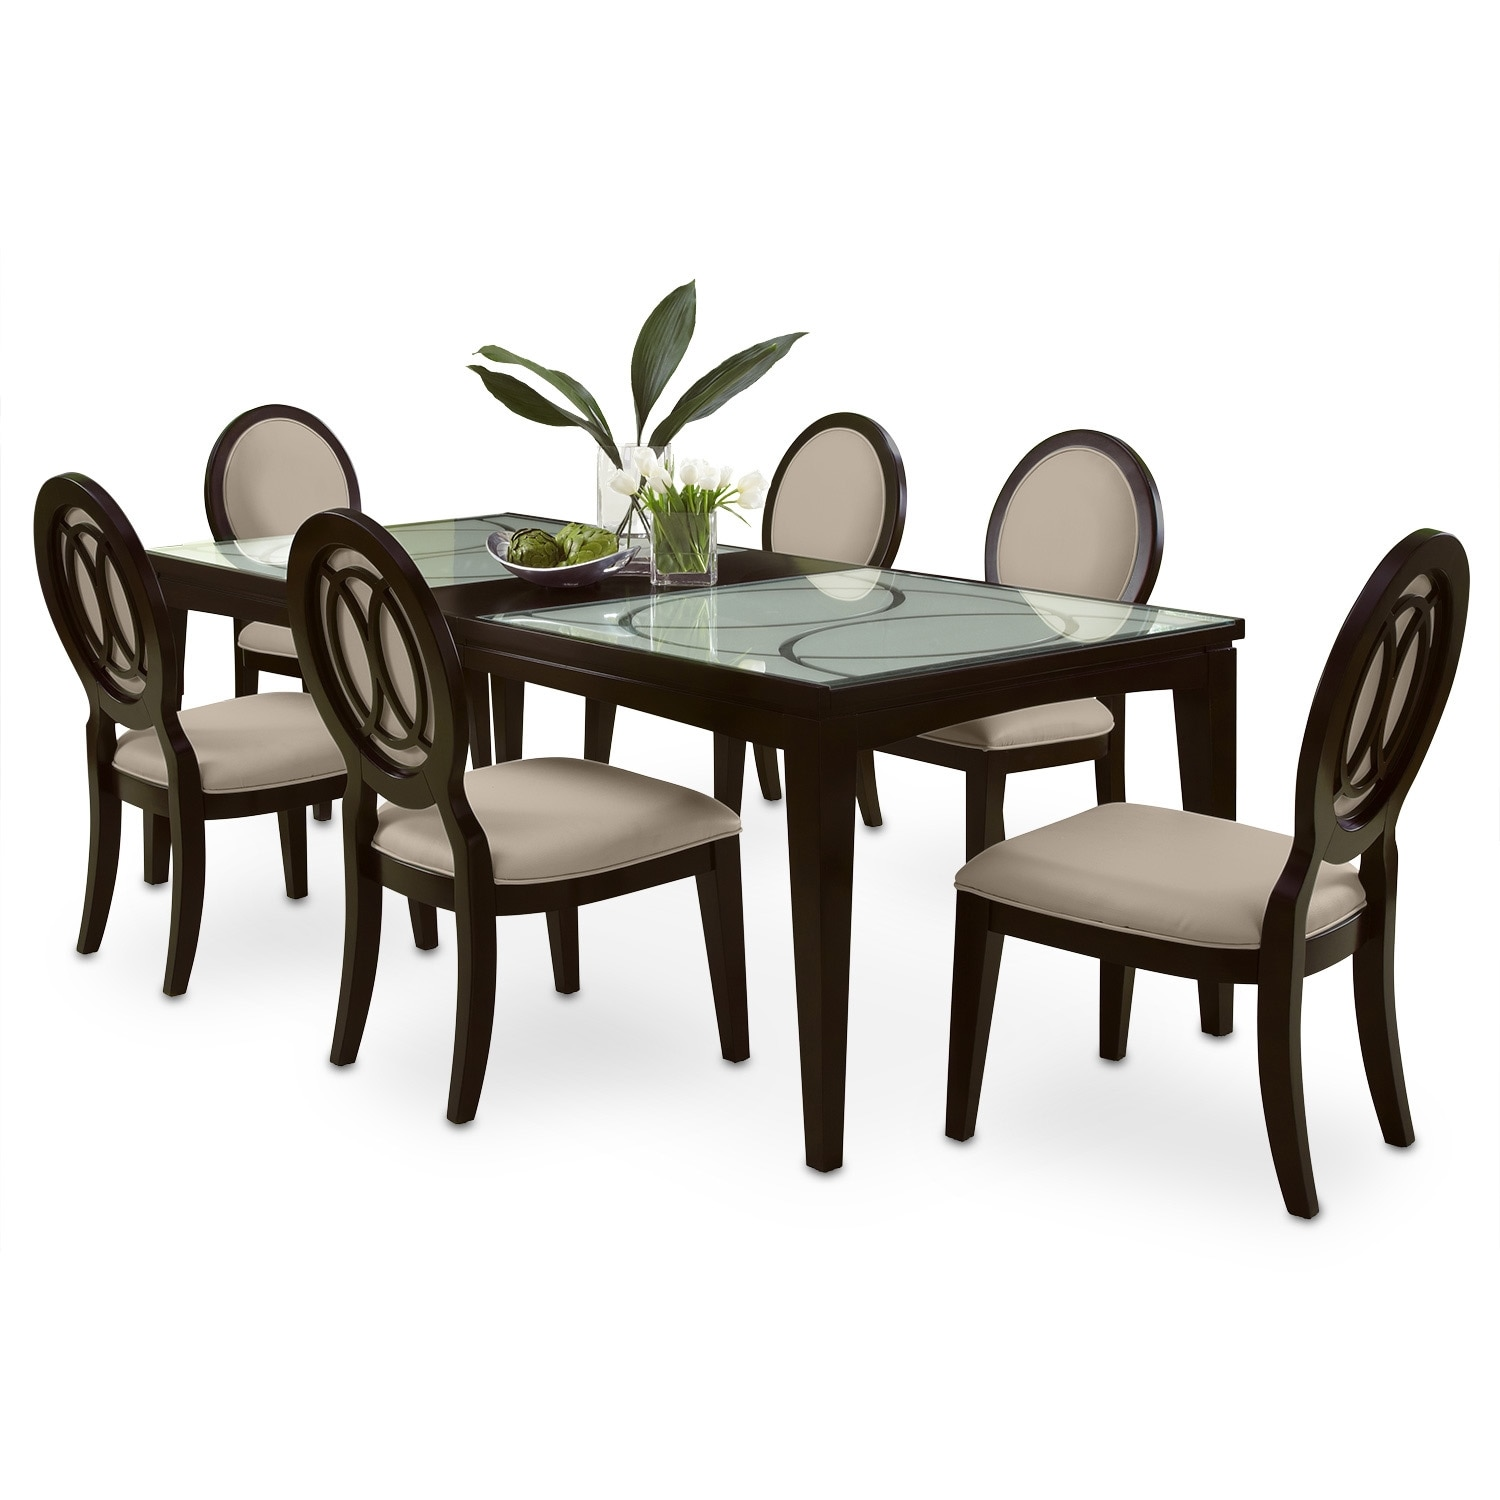 Cosmo 7 pc dining room american signature furniture for Dining room furniture images